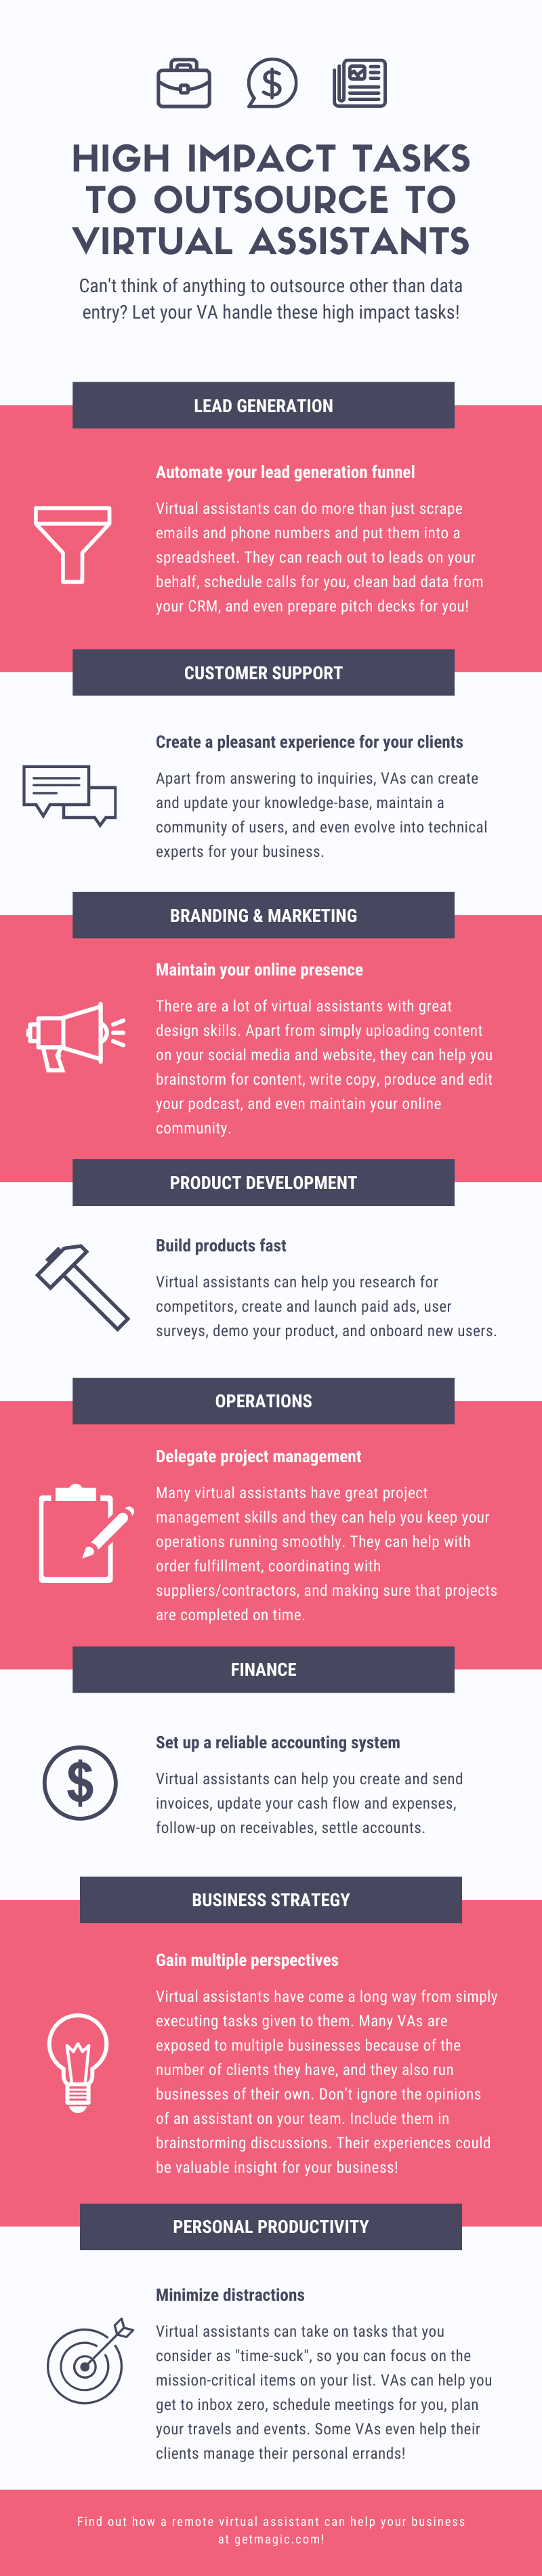 High Impact Tasks and Projects to Outsource to Virtual Assistants